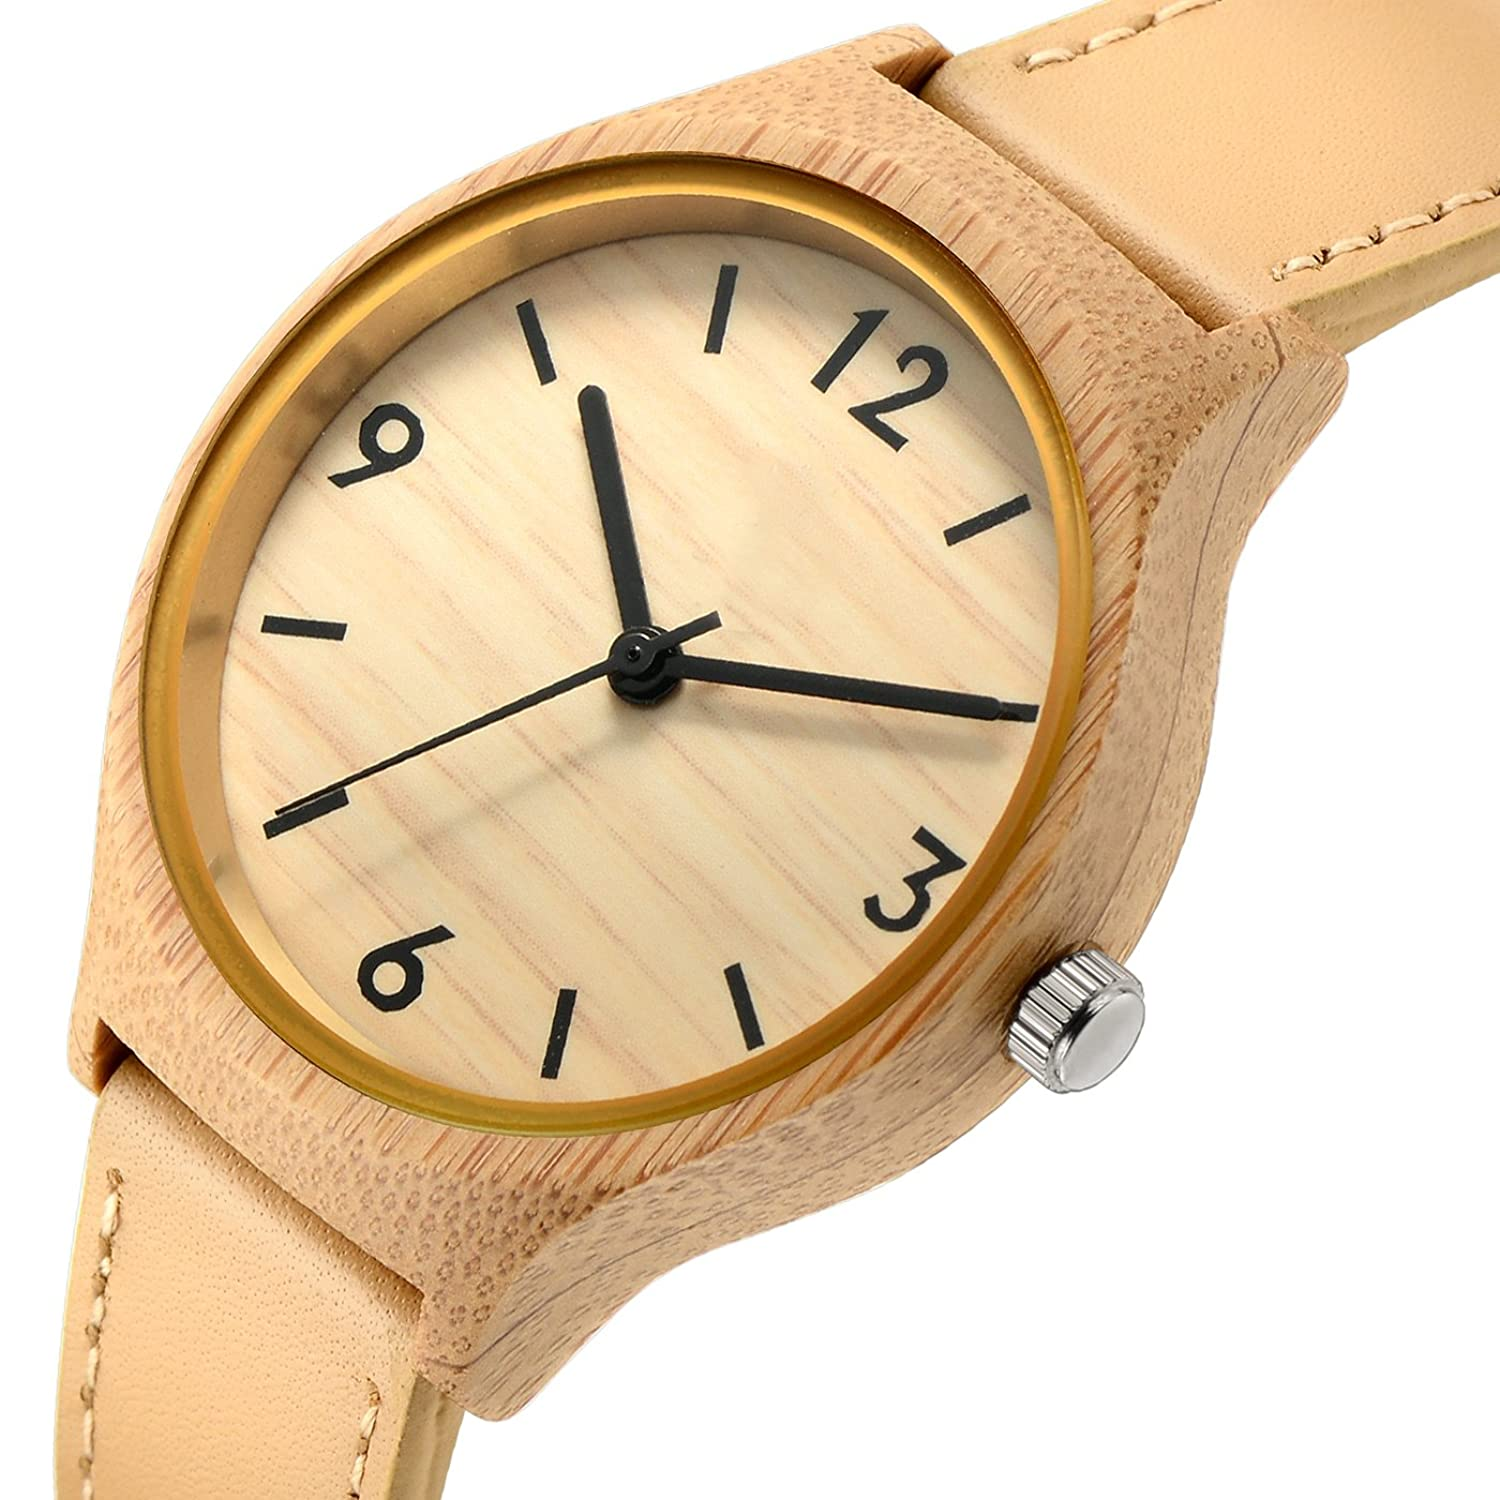 product wood watch relogio watches quartz leather male strap simulation relojes wooden saat color choose wristwatch men masculino casual